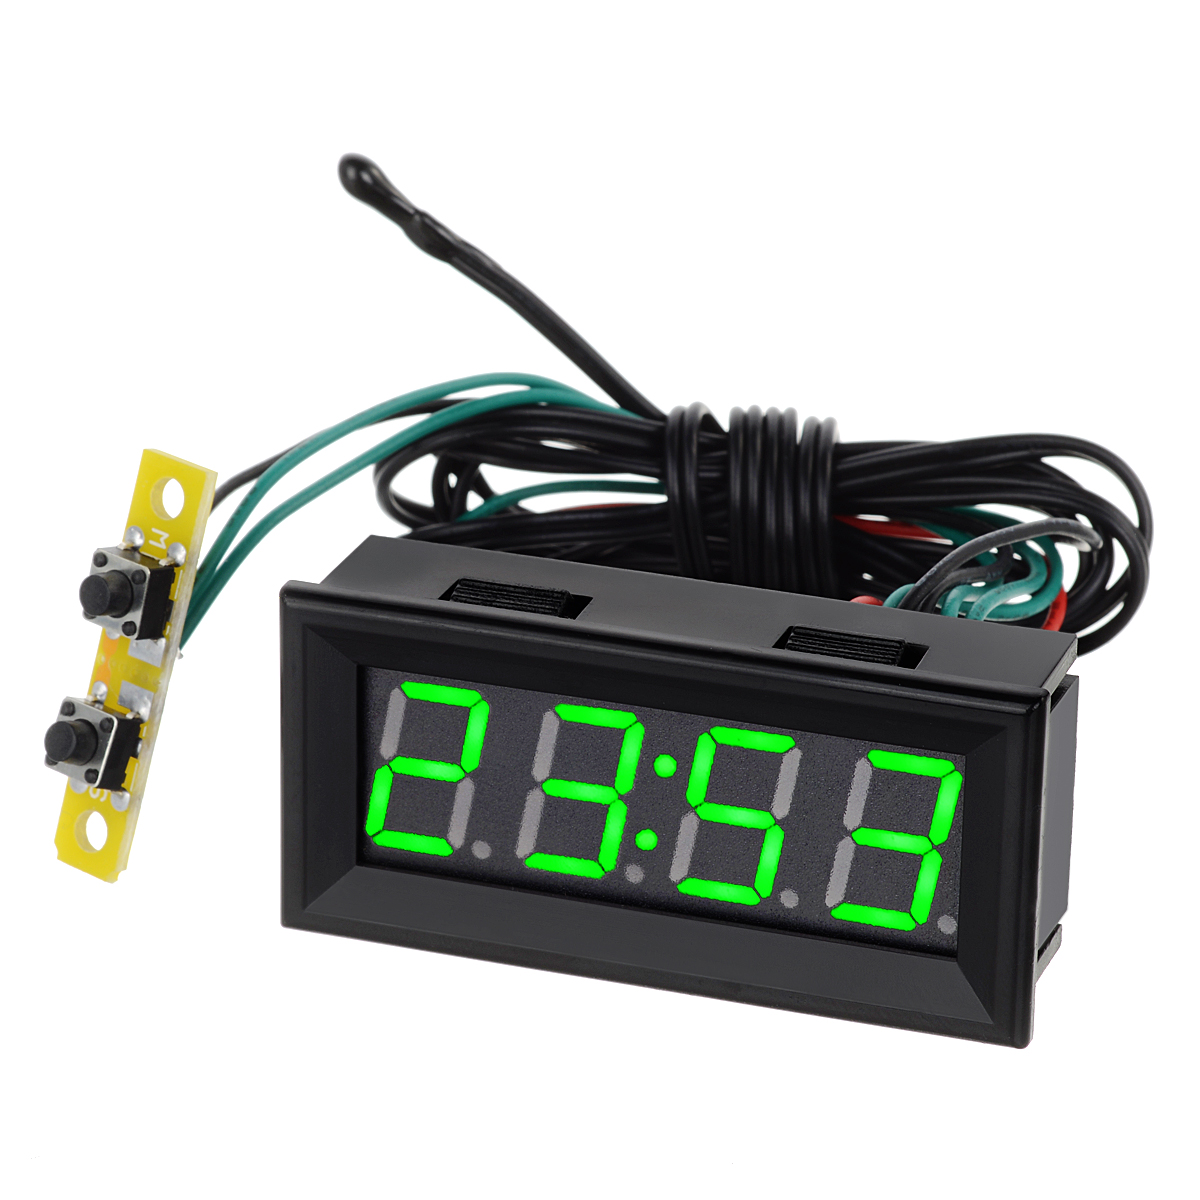 0.56 Green LED Clock Voltage Temperature 12V Digital Display Thermometer Voltmeter  Electrical Test Meters Digital Volt Gauge